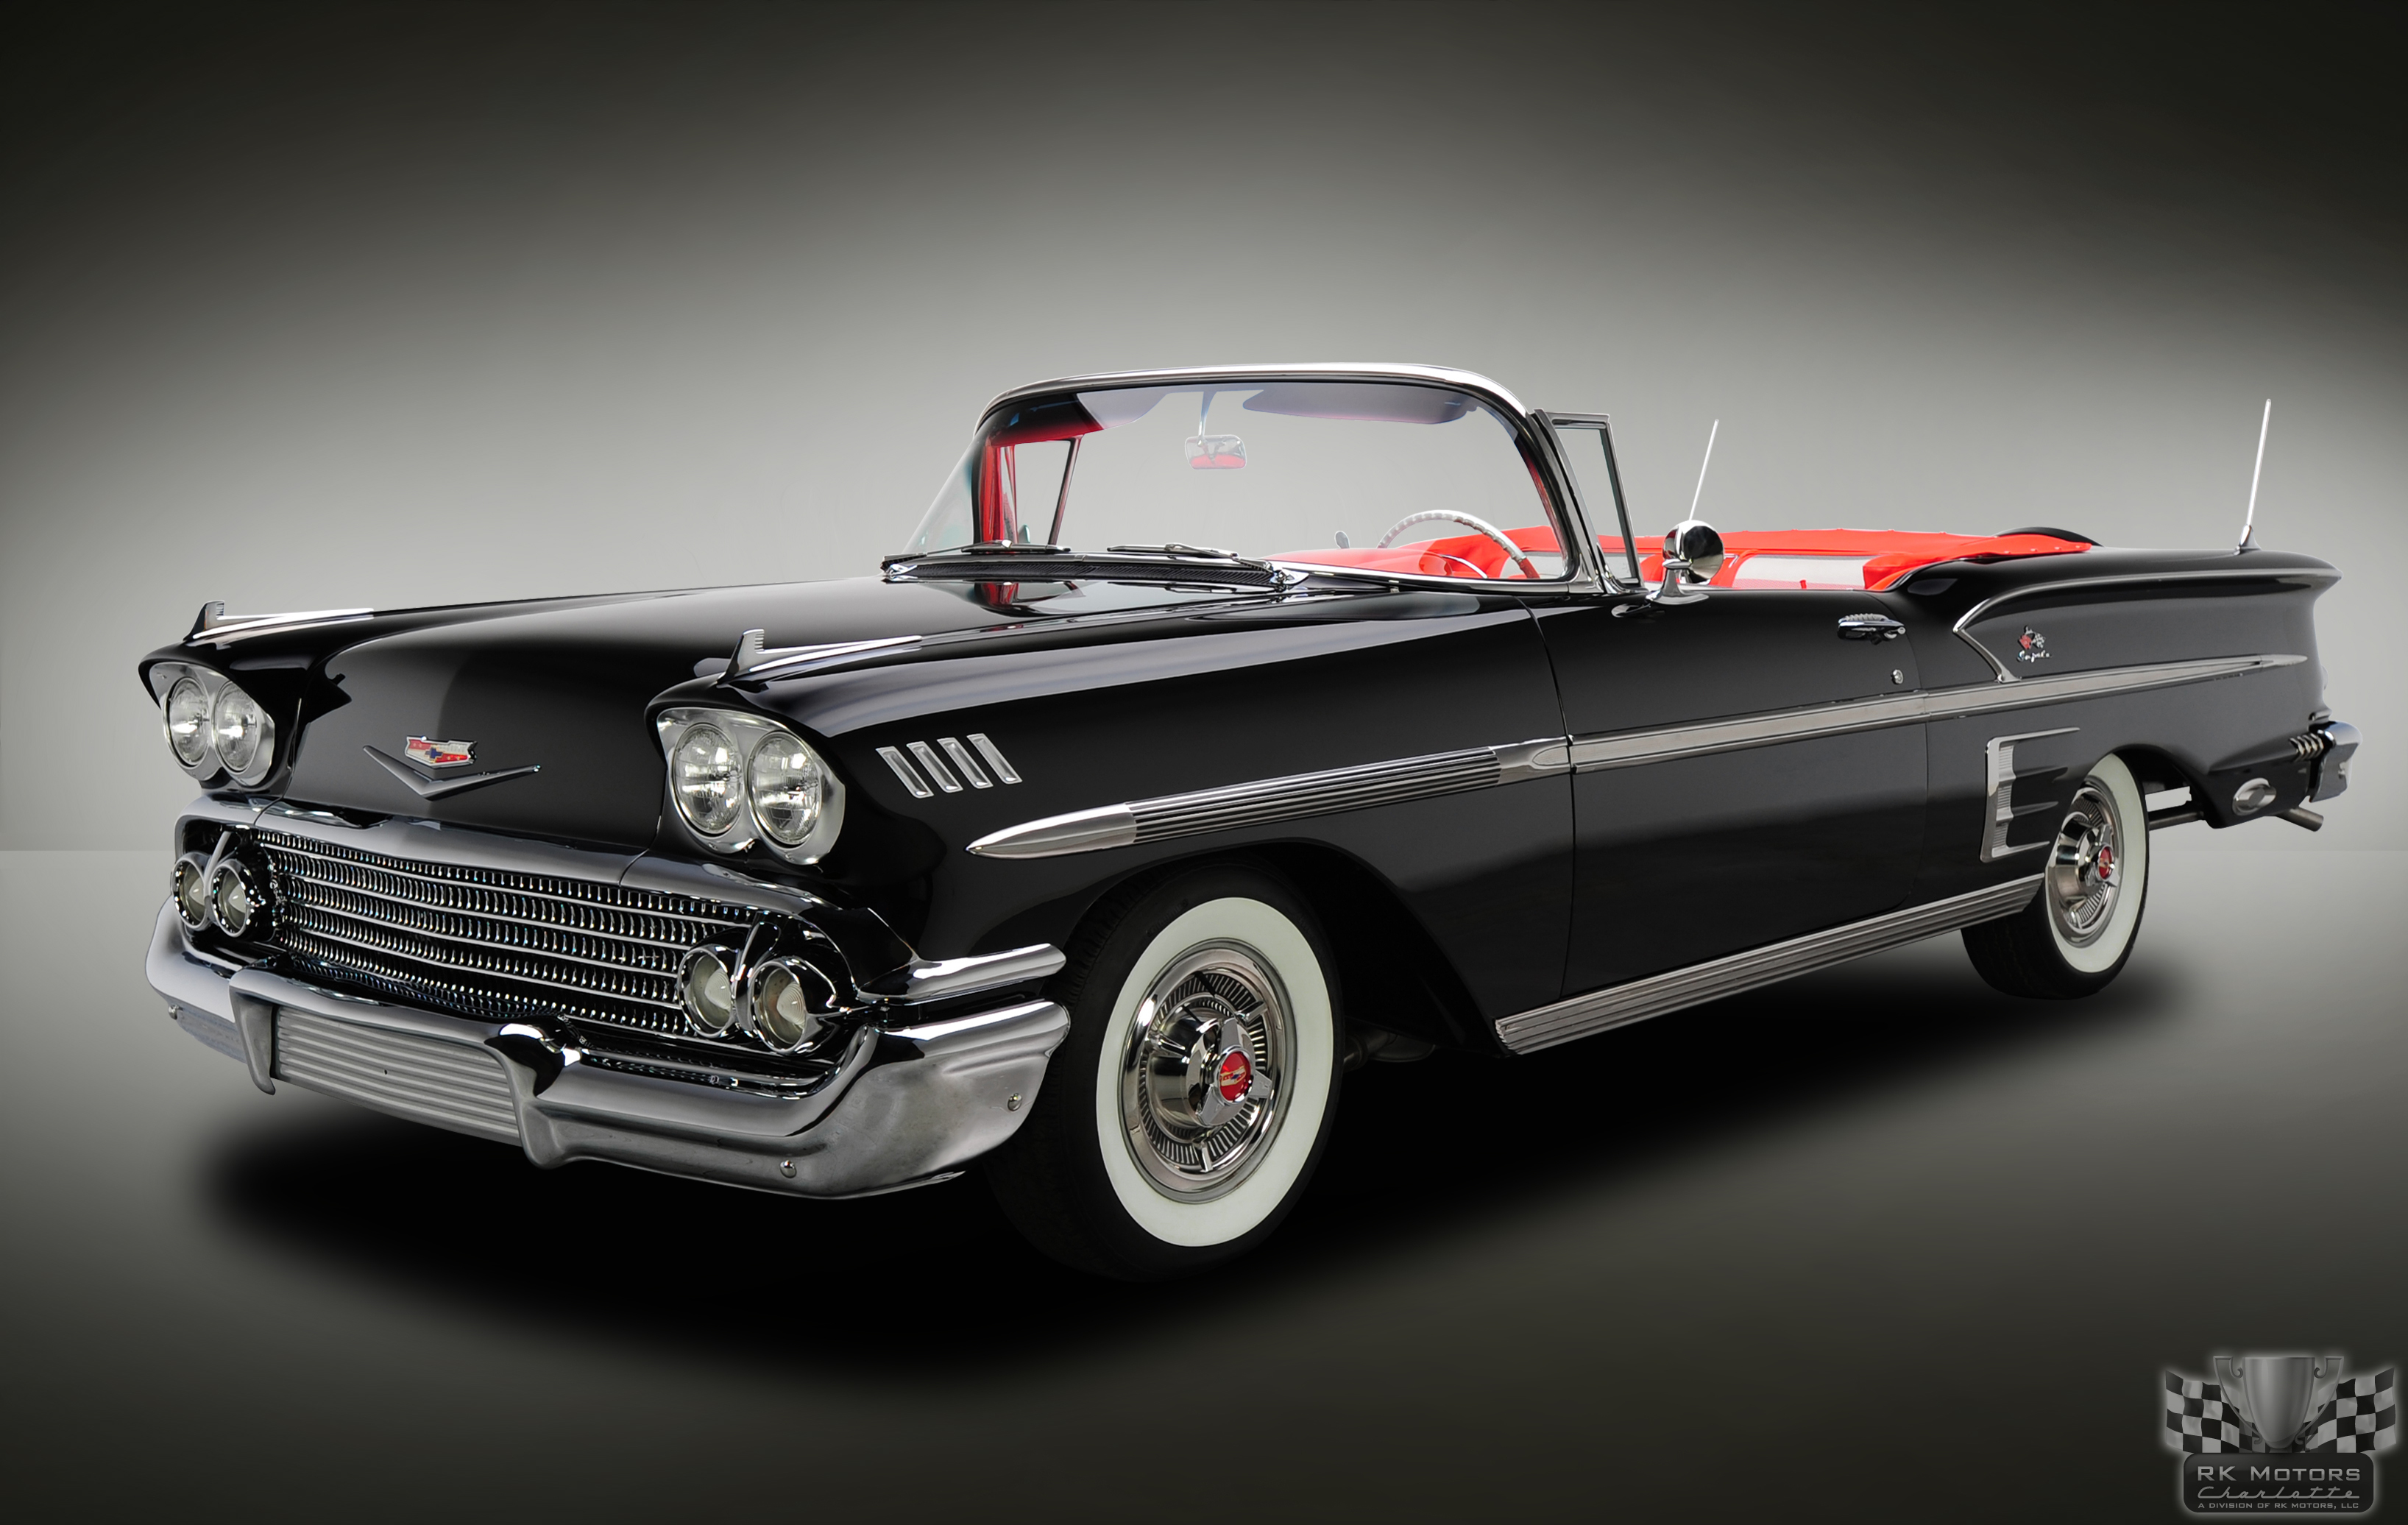 1958 chevrolet impala convertible 348 tri power classic cars wallpaper 3272x2072 71644 wallpaperup